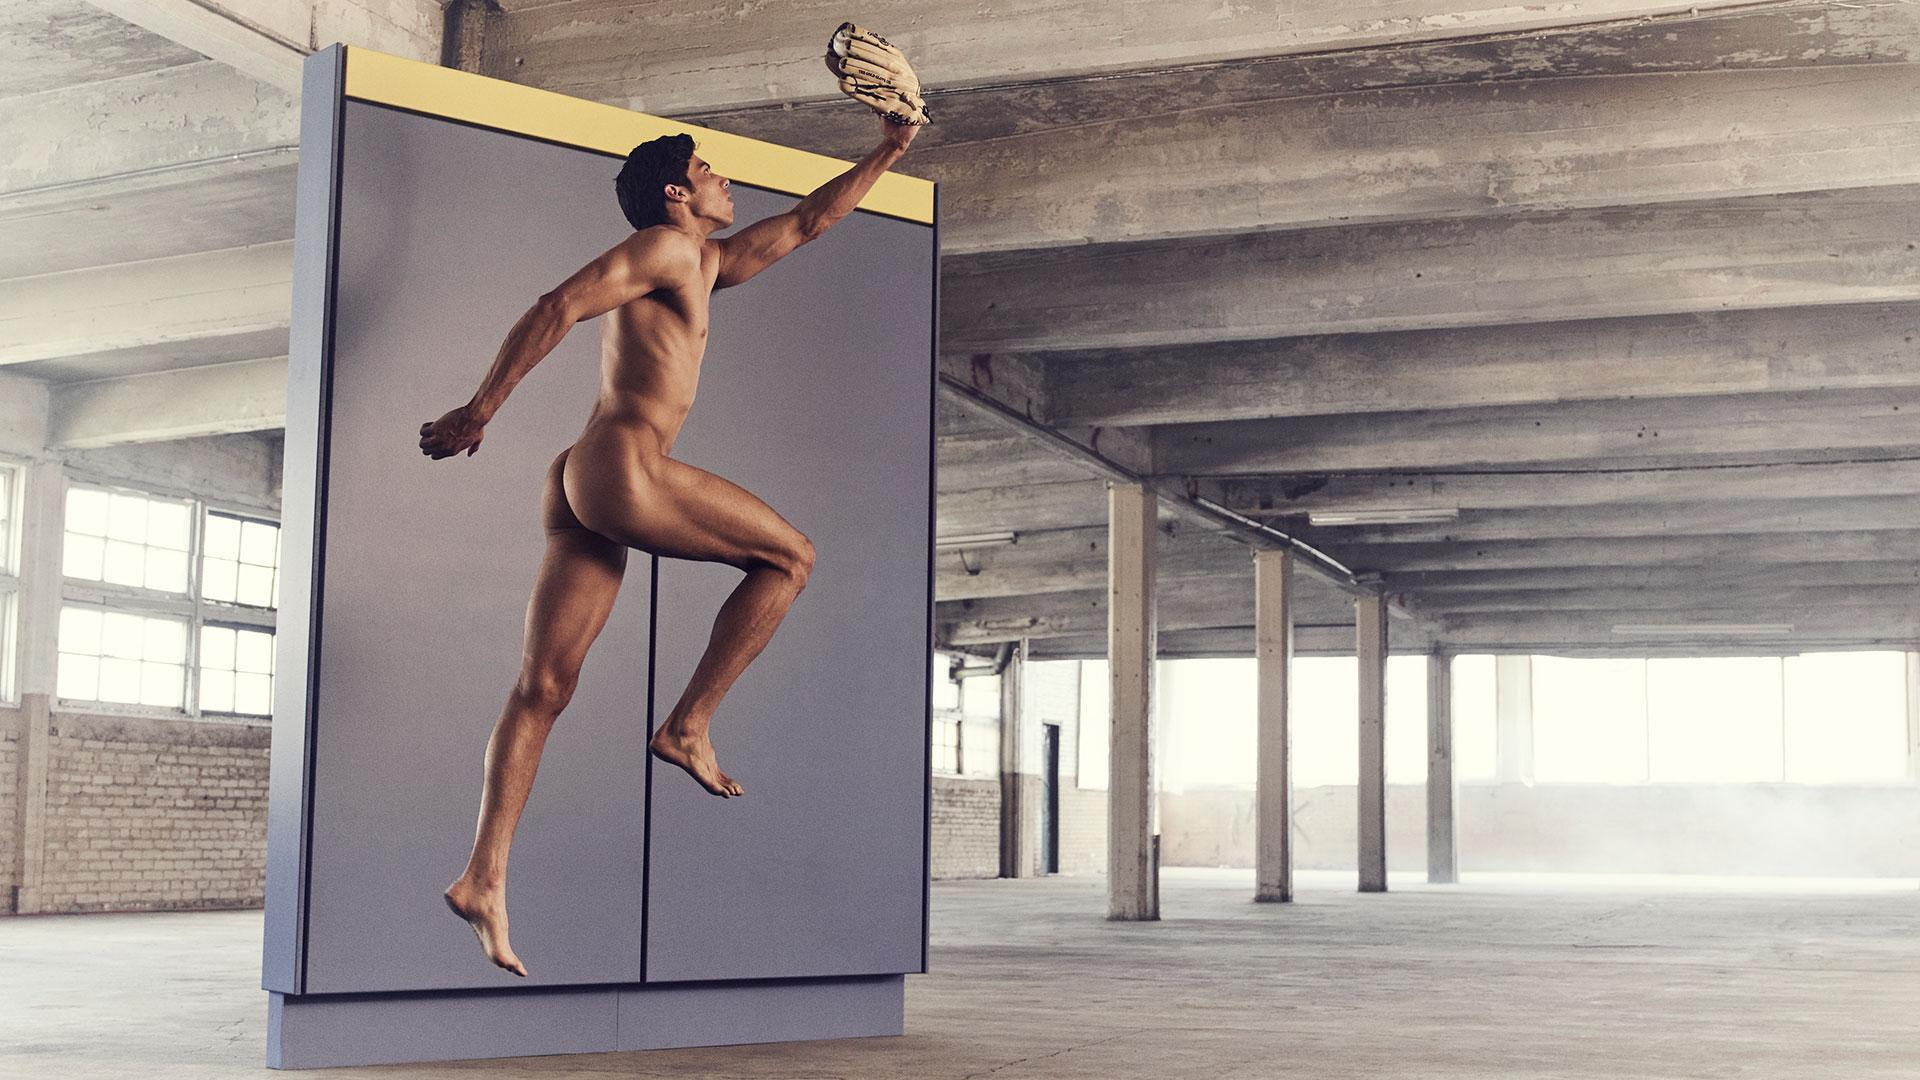 Behind the scenes of Christian Yelich's Body Issue shoot